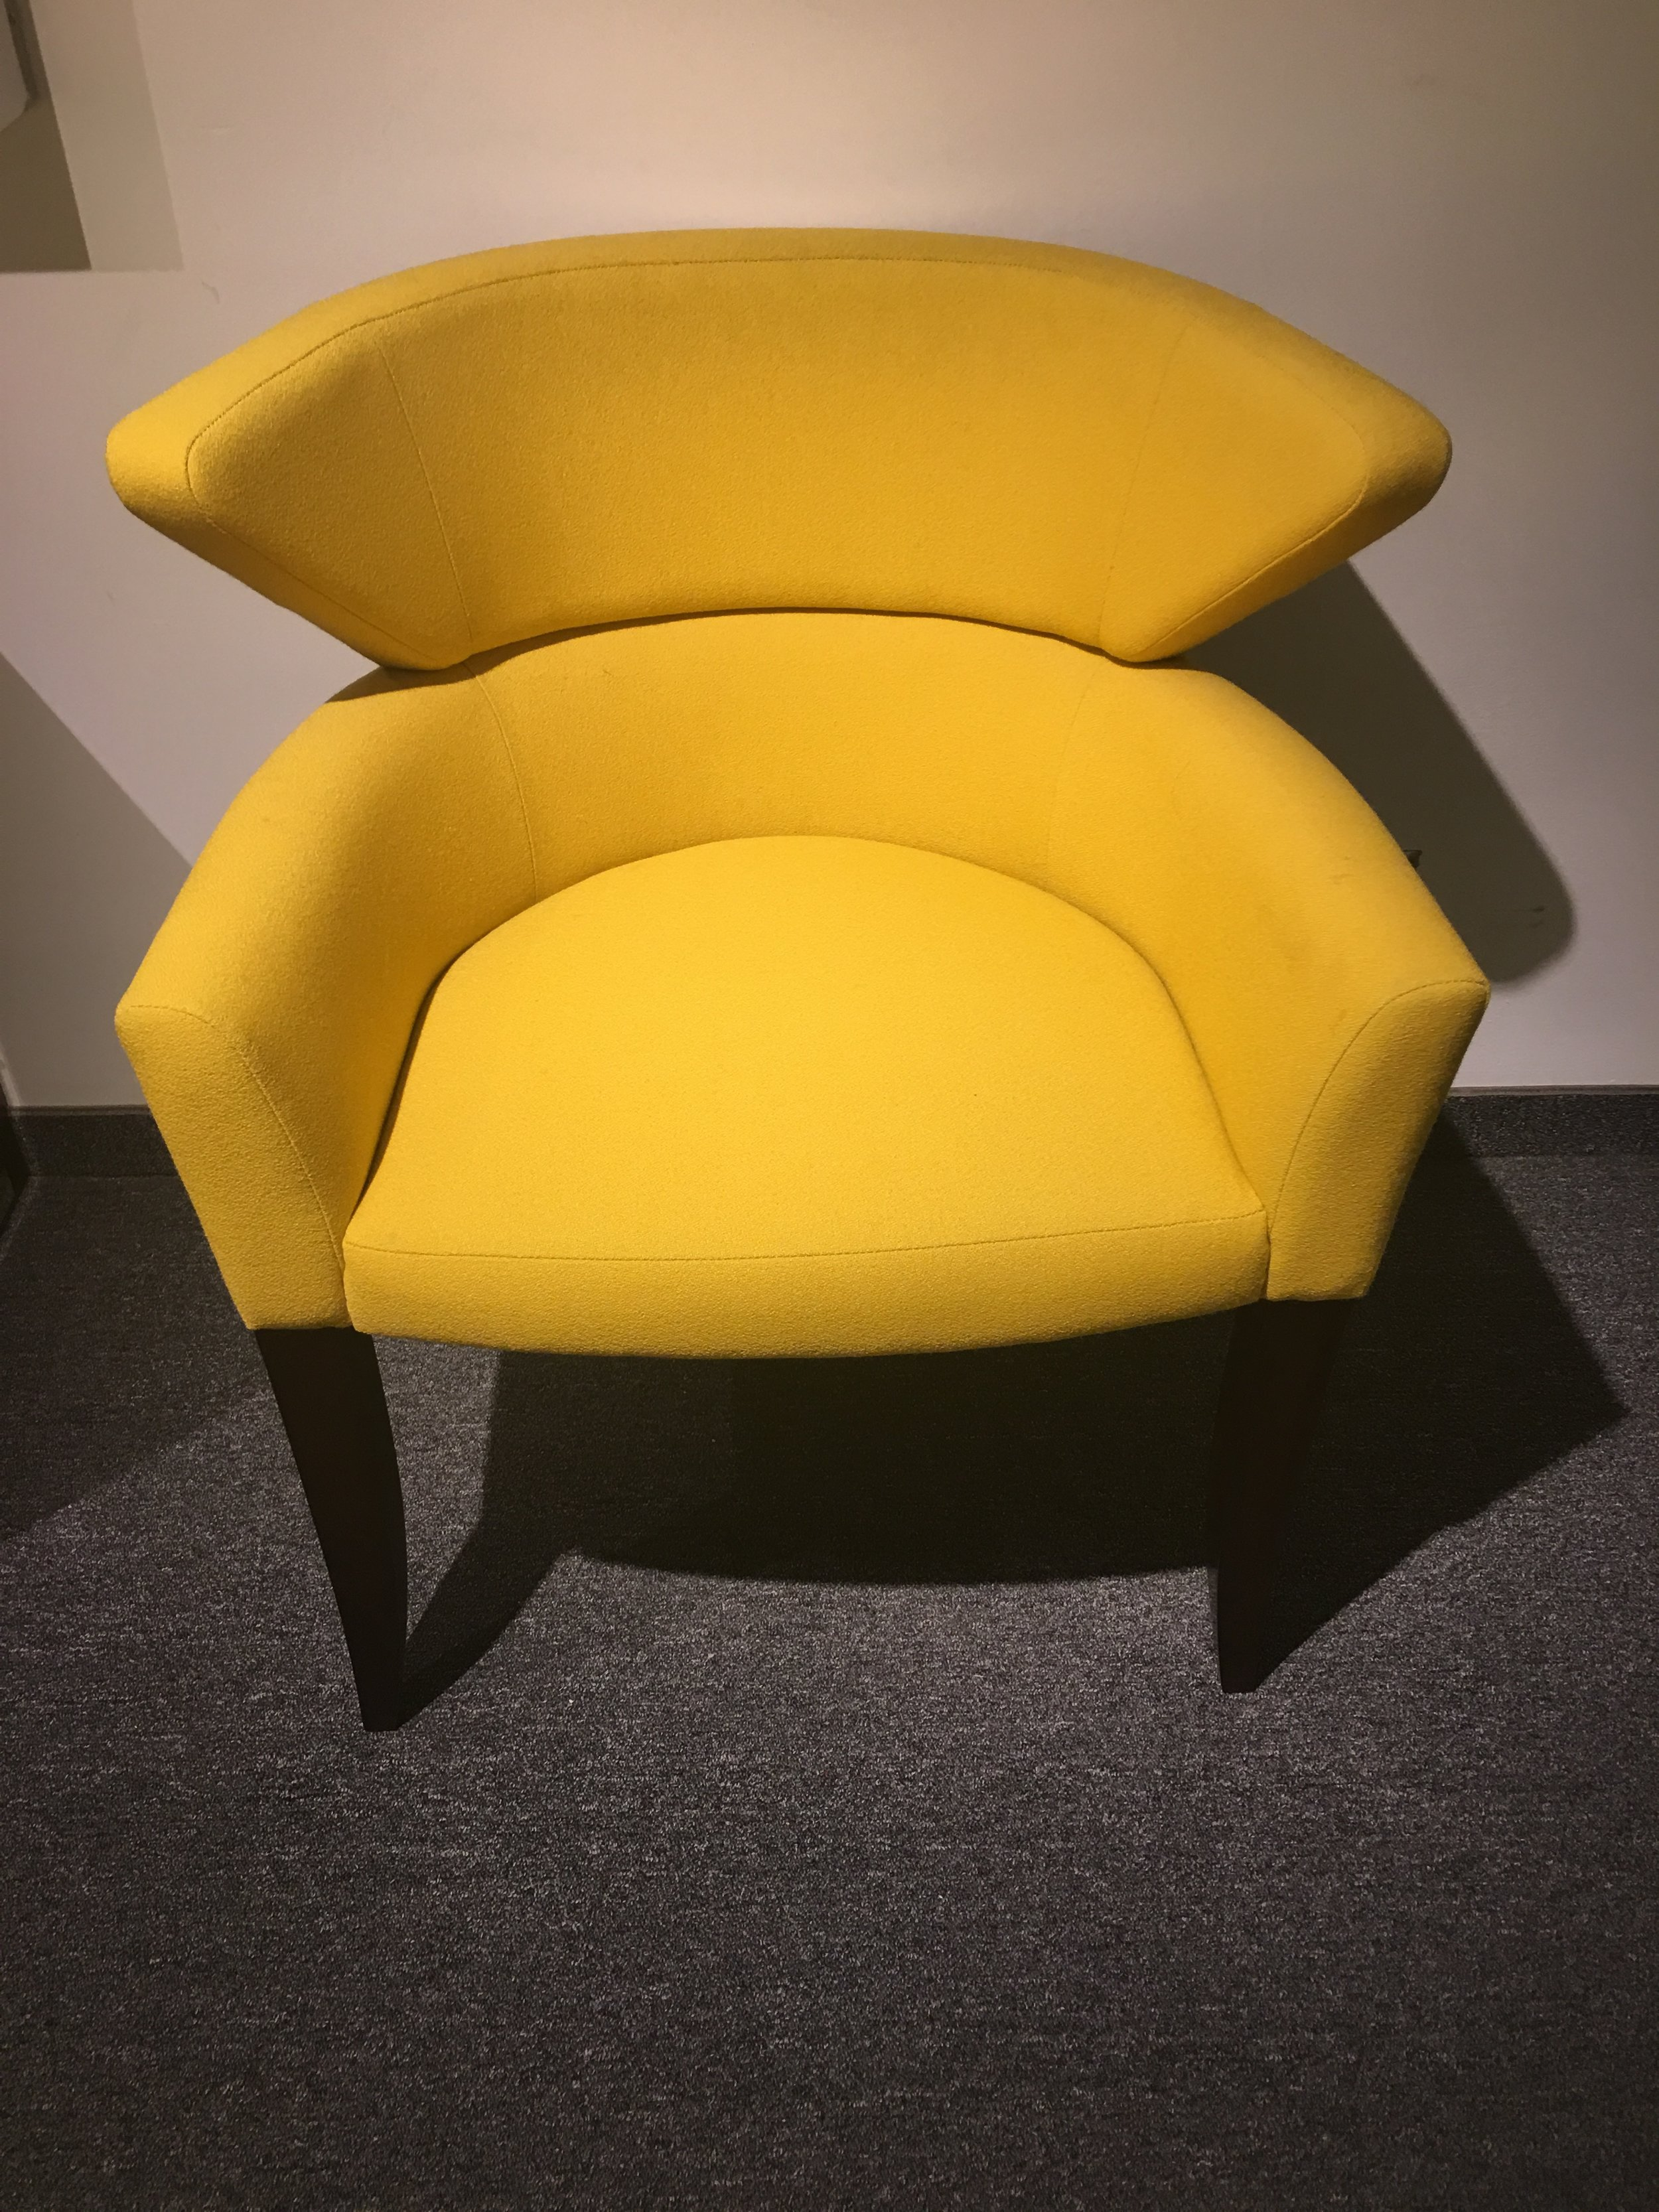 BRIGHT YELLOW CHAIR AT BRUETON SHOWROOM  - 200 LEX